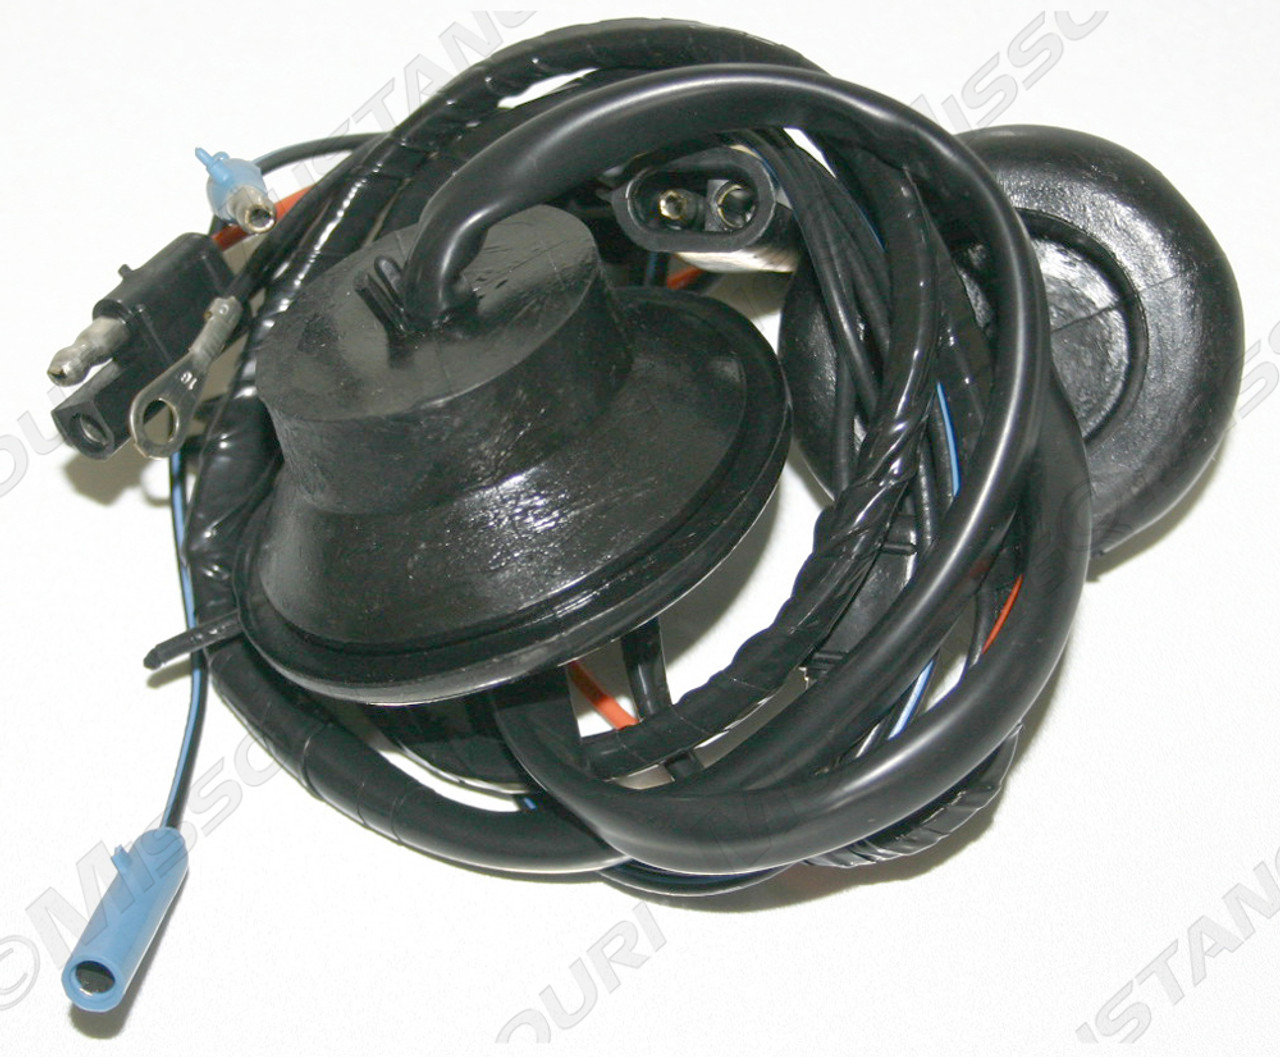 medium resolution of 1969 1970 ford mustang door light wiring with speakers